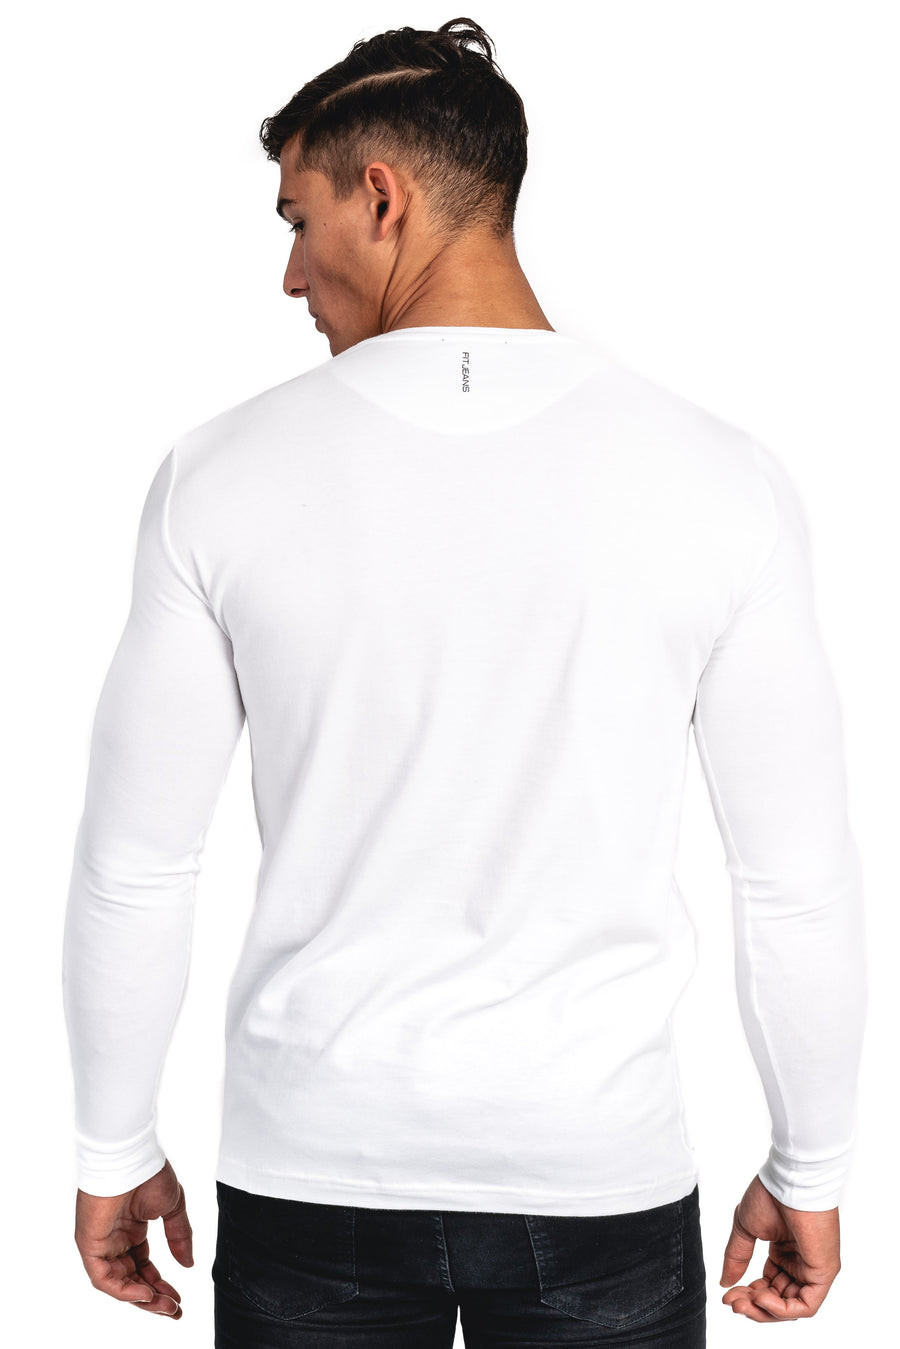 Mens Long Sleeve T-Shirt - White